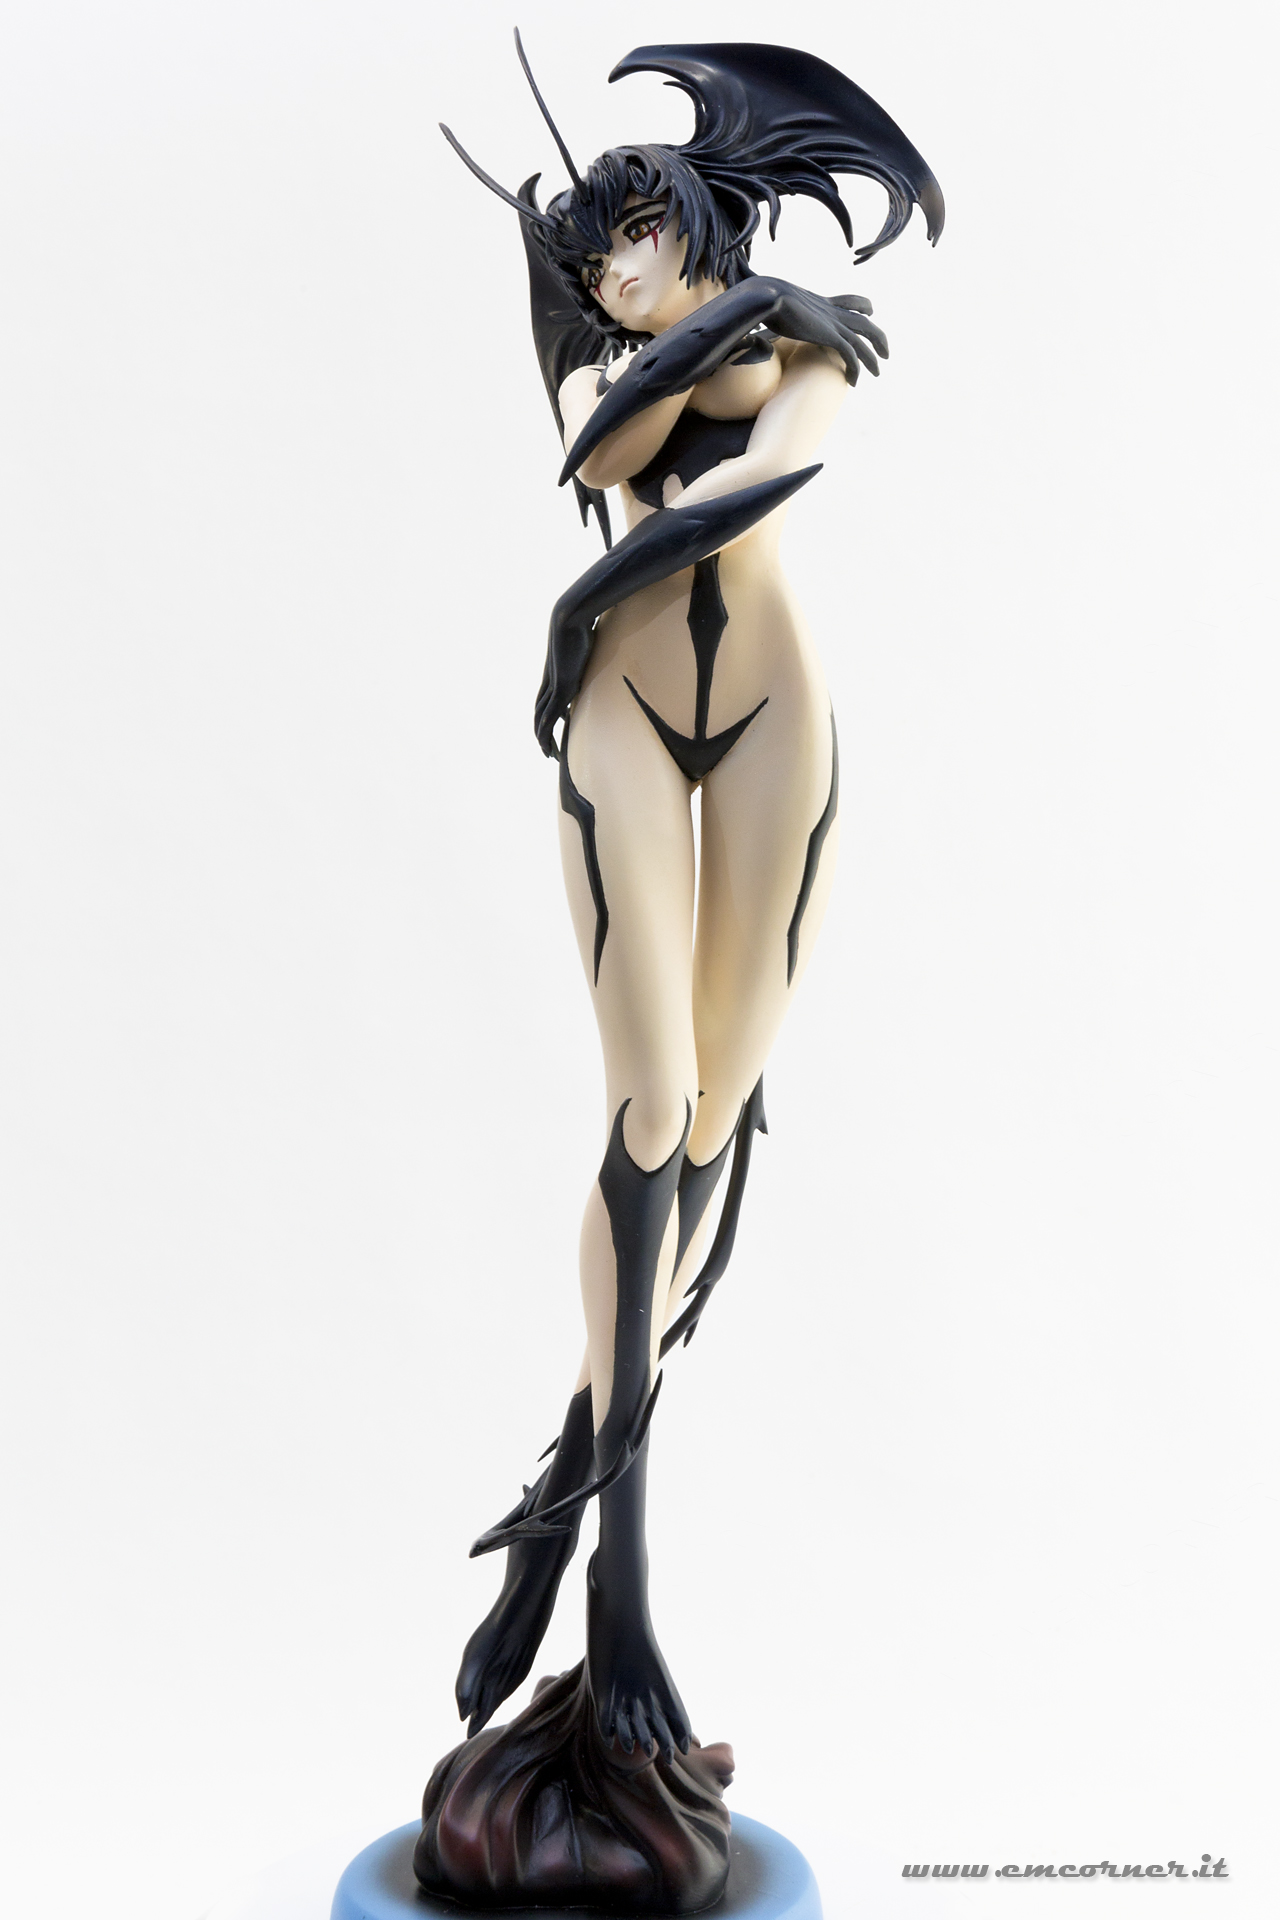 new-line-devilman-devil-lady-pre-painted-coldcast-6_-emcorner-it_